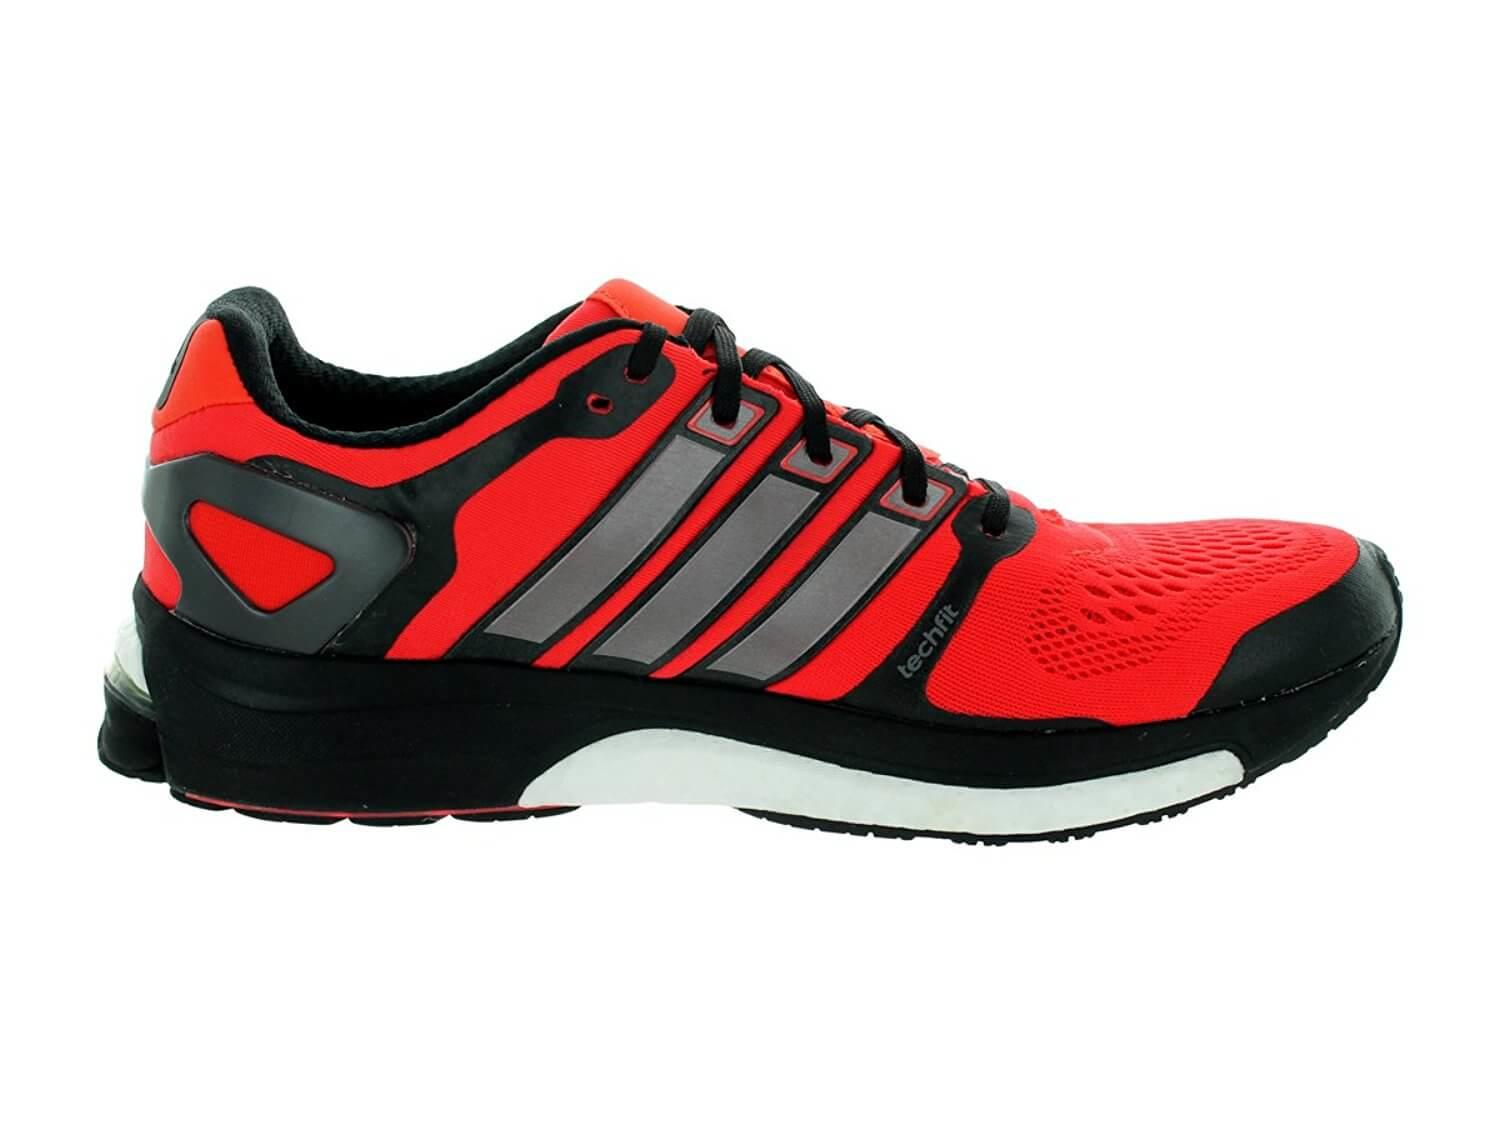 the low profile of the Adidas Adistar Boost allows for a great freedom of movement during a run